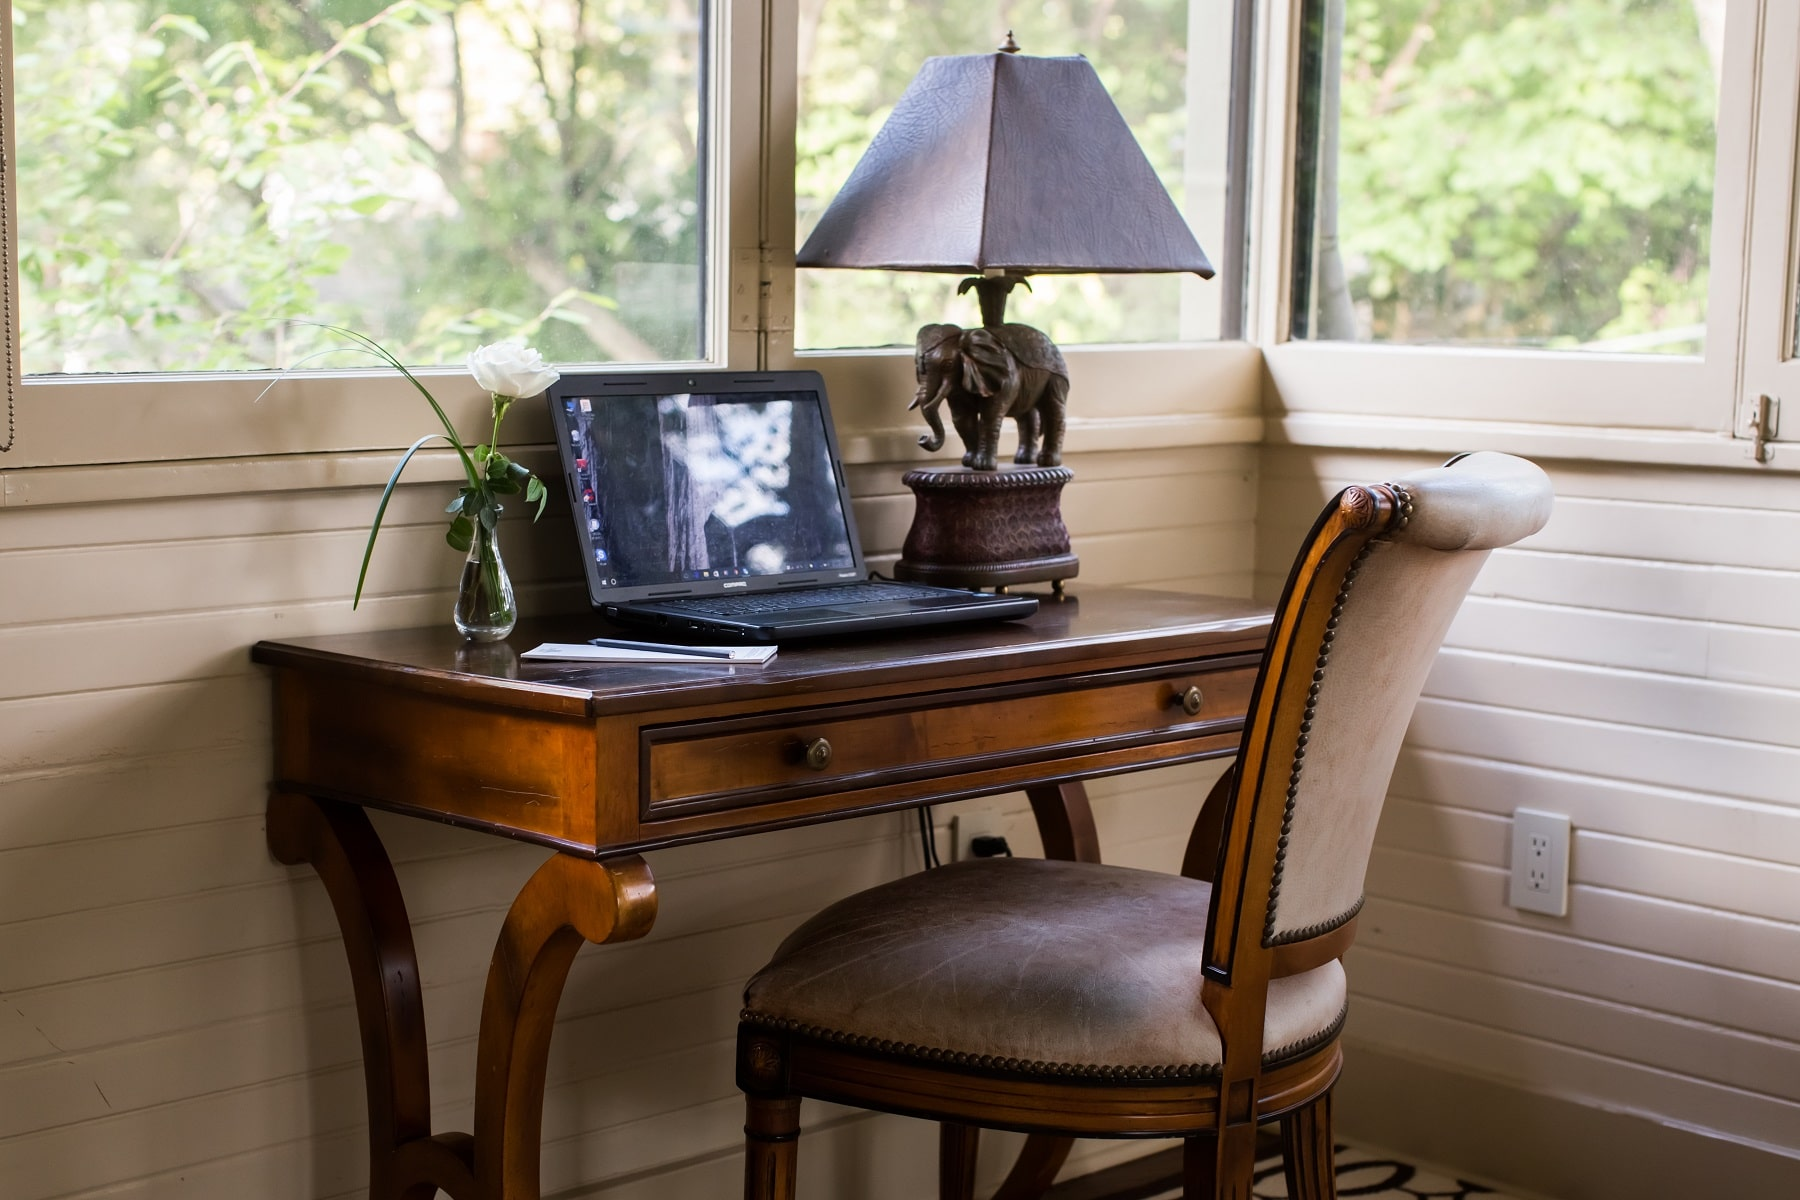 A desk with a laptop on it at Stonehurst Place